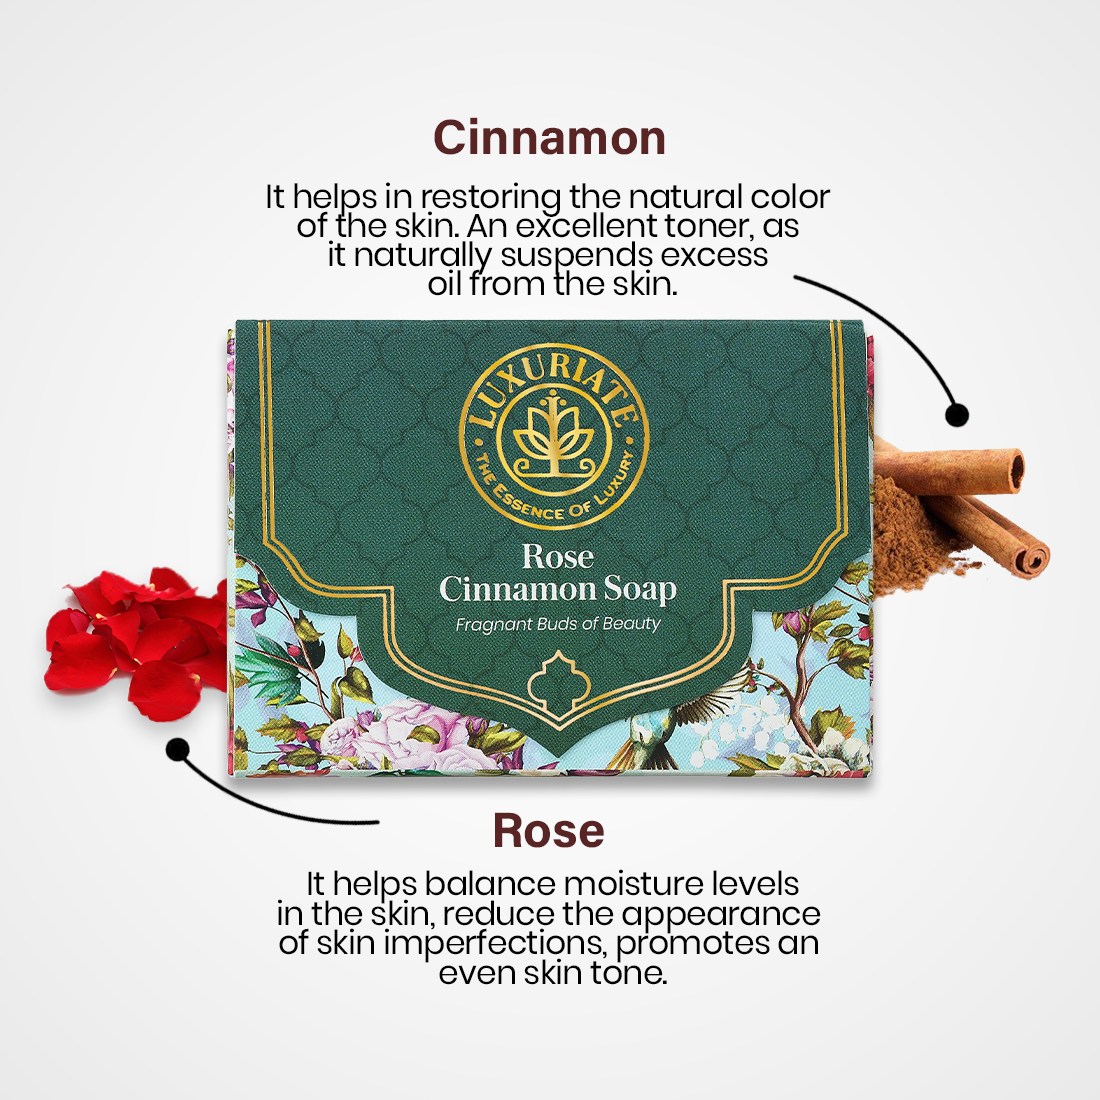 LUXURIATE Rose Cinnamon Fragnant Buds of Beauty Soap Bar for Men and Women,125 gm